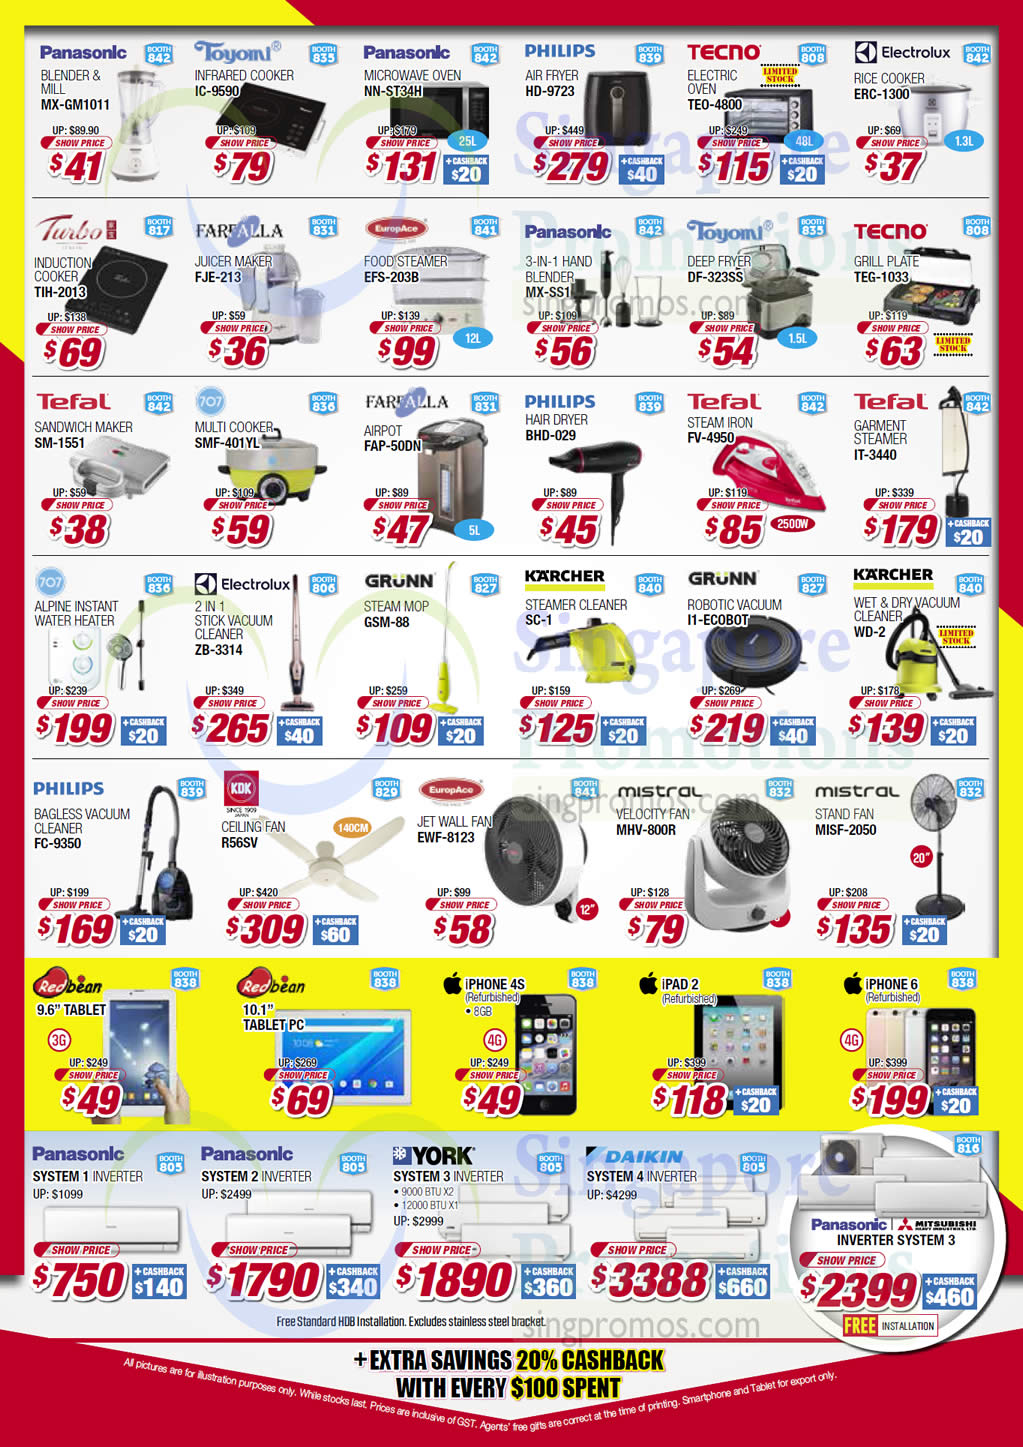 Small Appliances, Philips, Tecno, Electrolux, Turbo